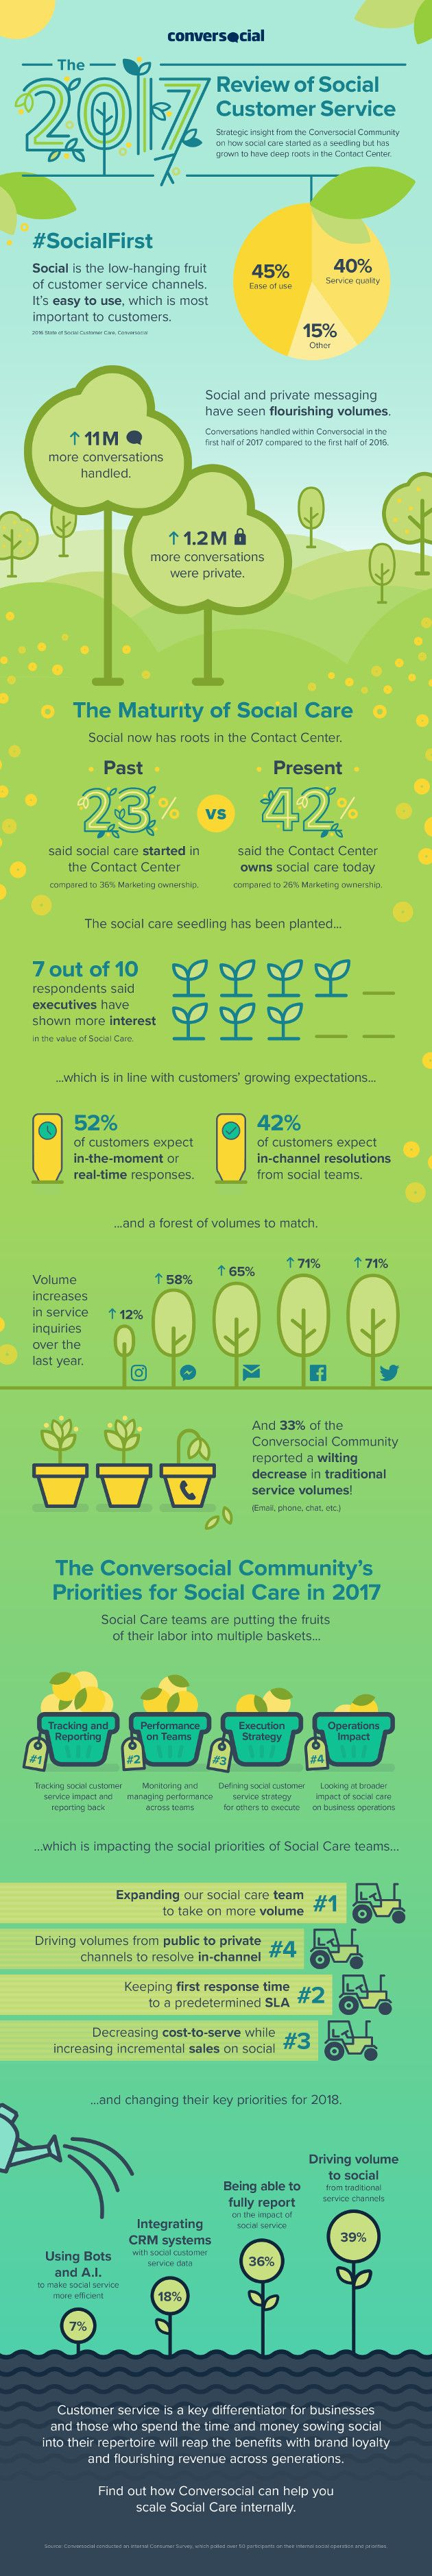 Customer Service on Social Channels: Marketing vs. Social Care | Infographic